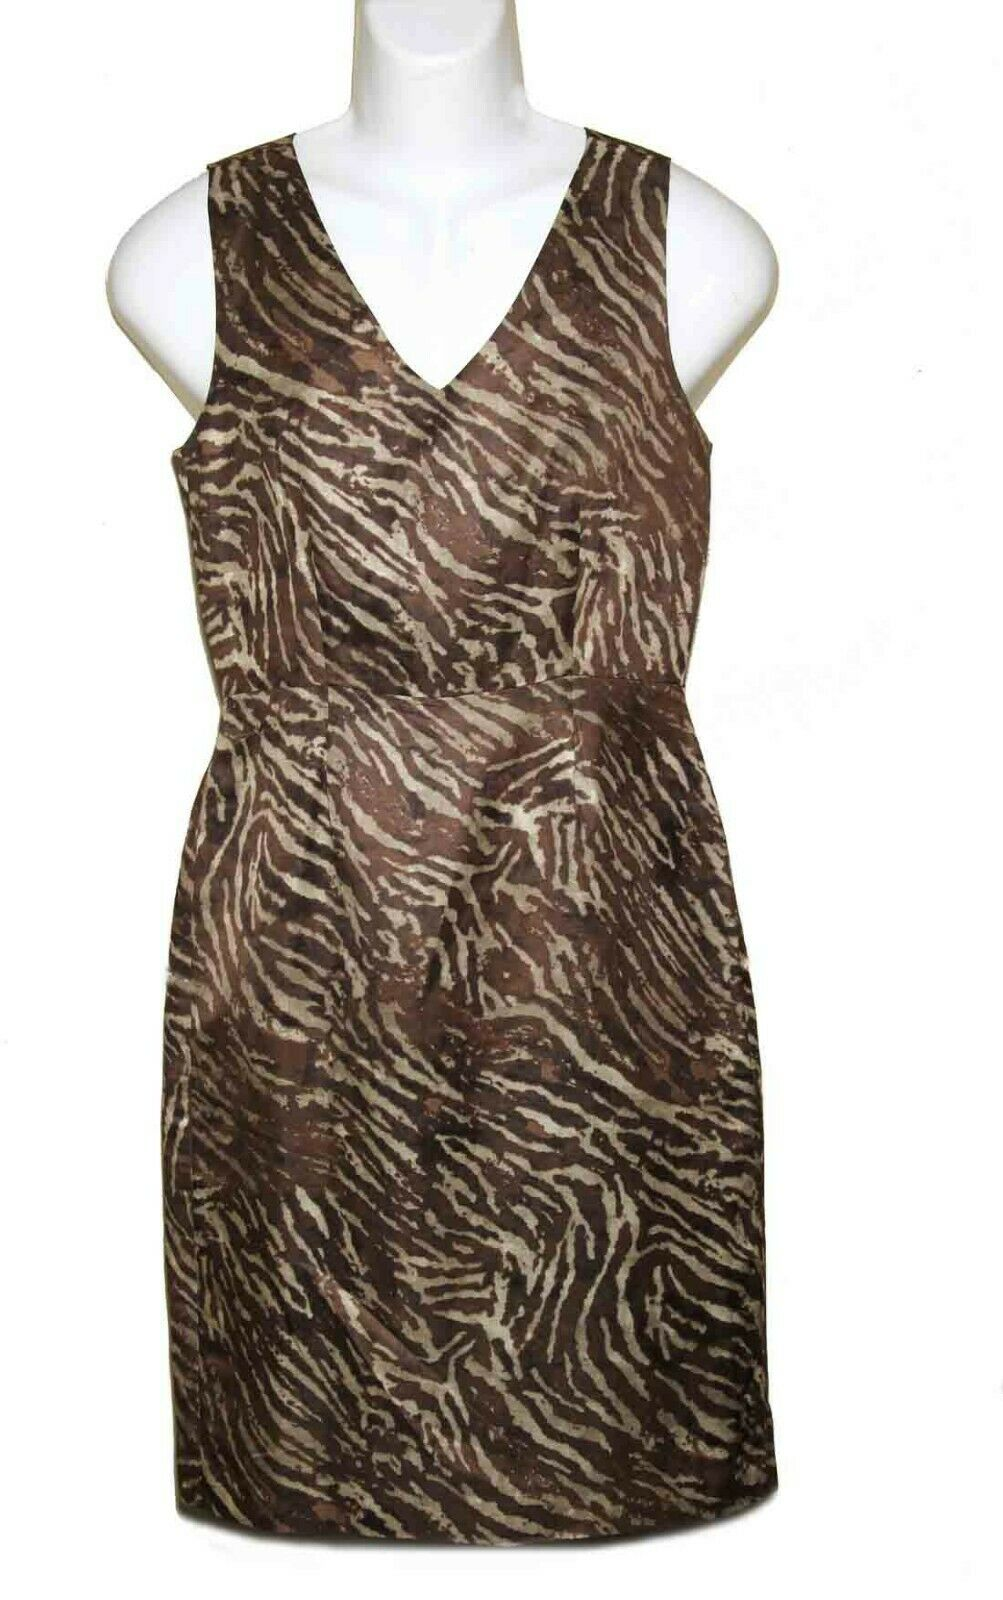 Banana Republic Dress Rayon Linen Animal Print Sleeveless Brown Tan Size 6